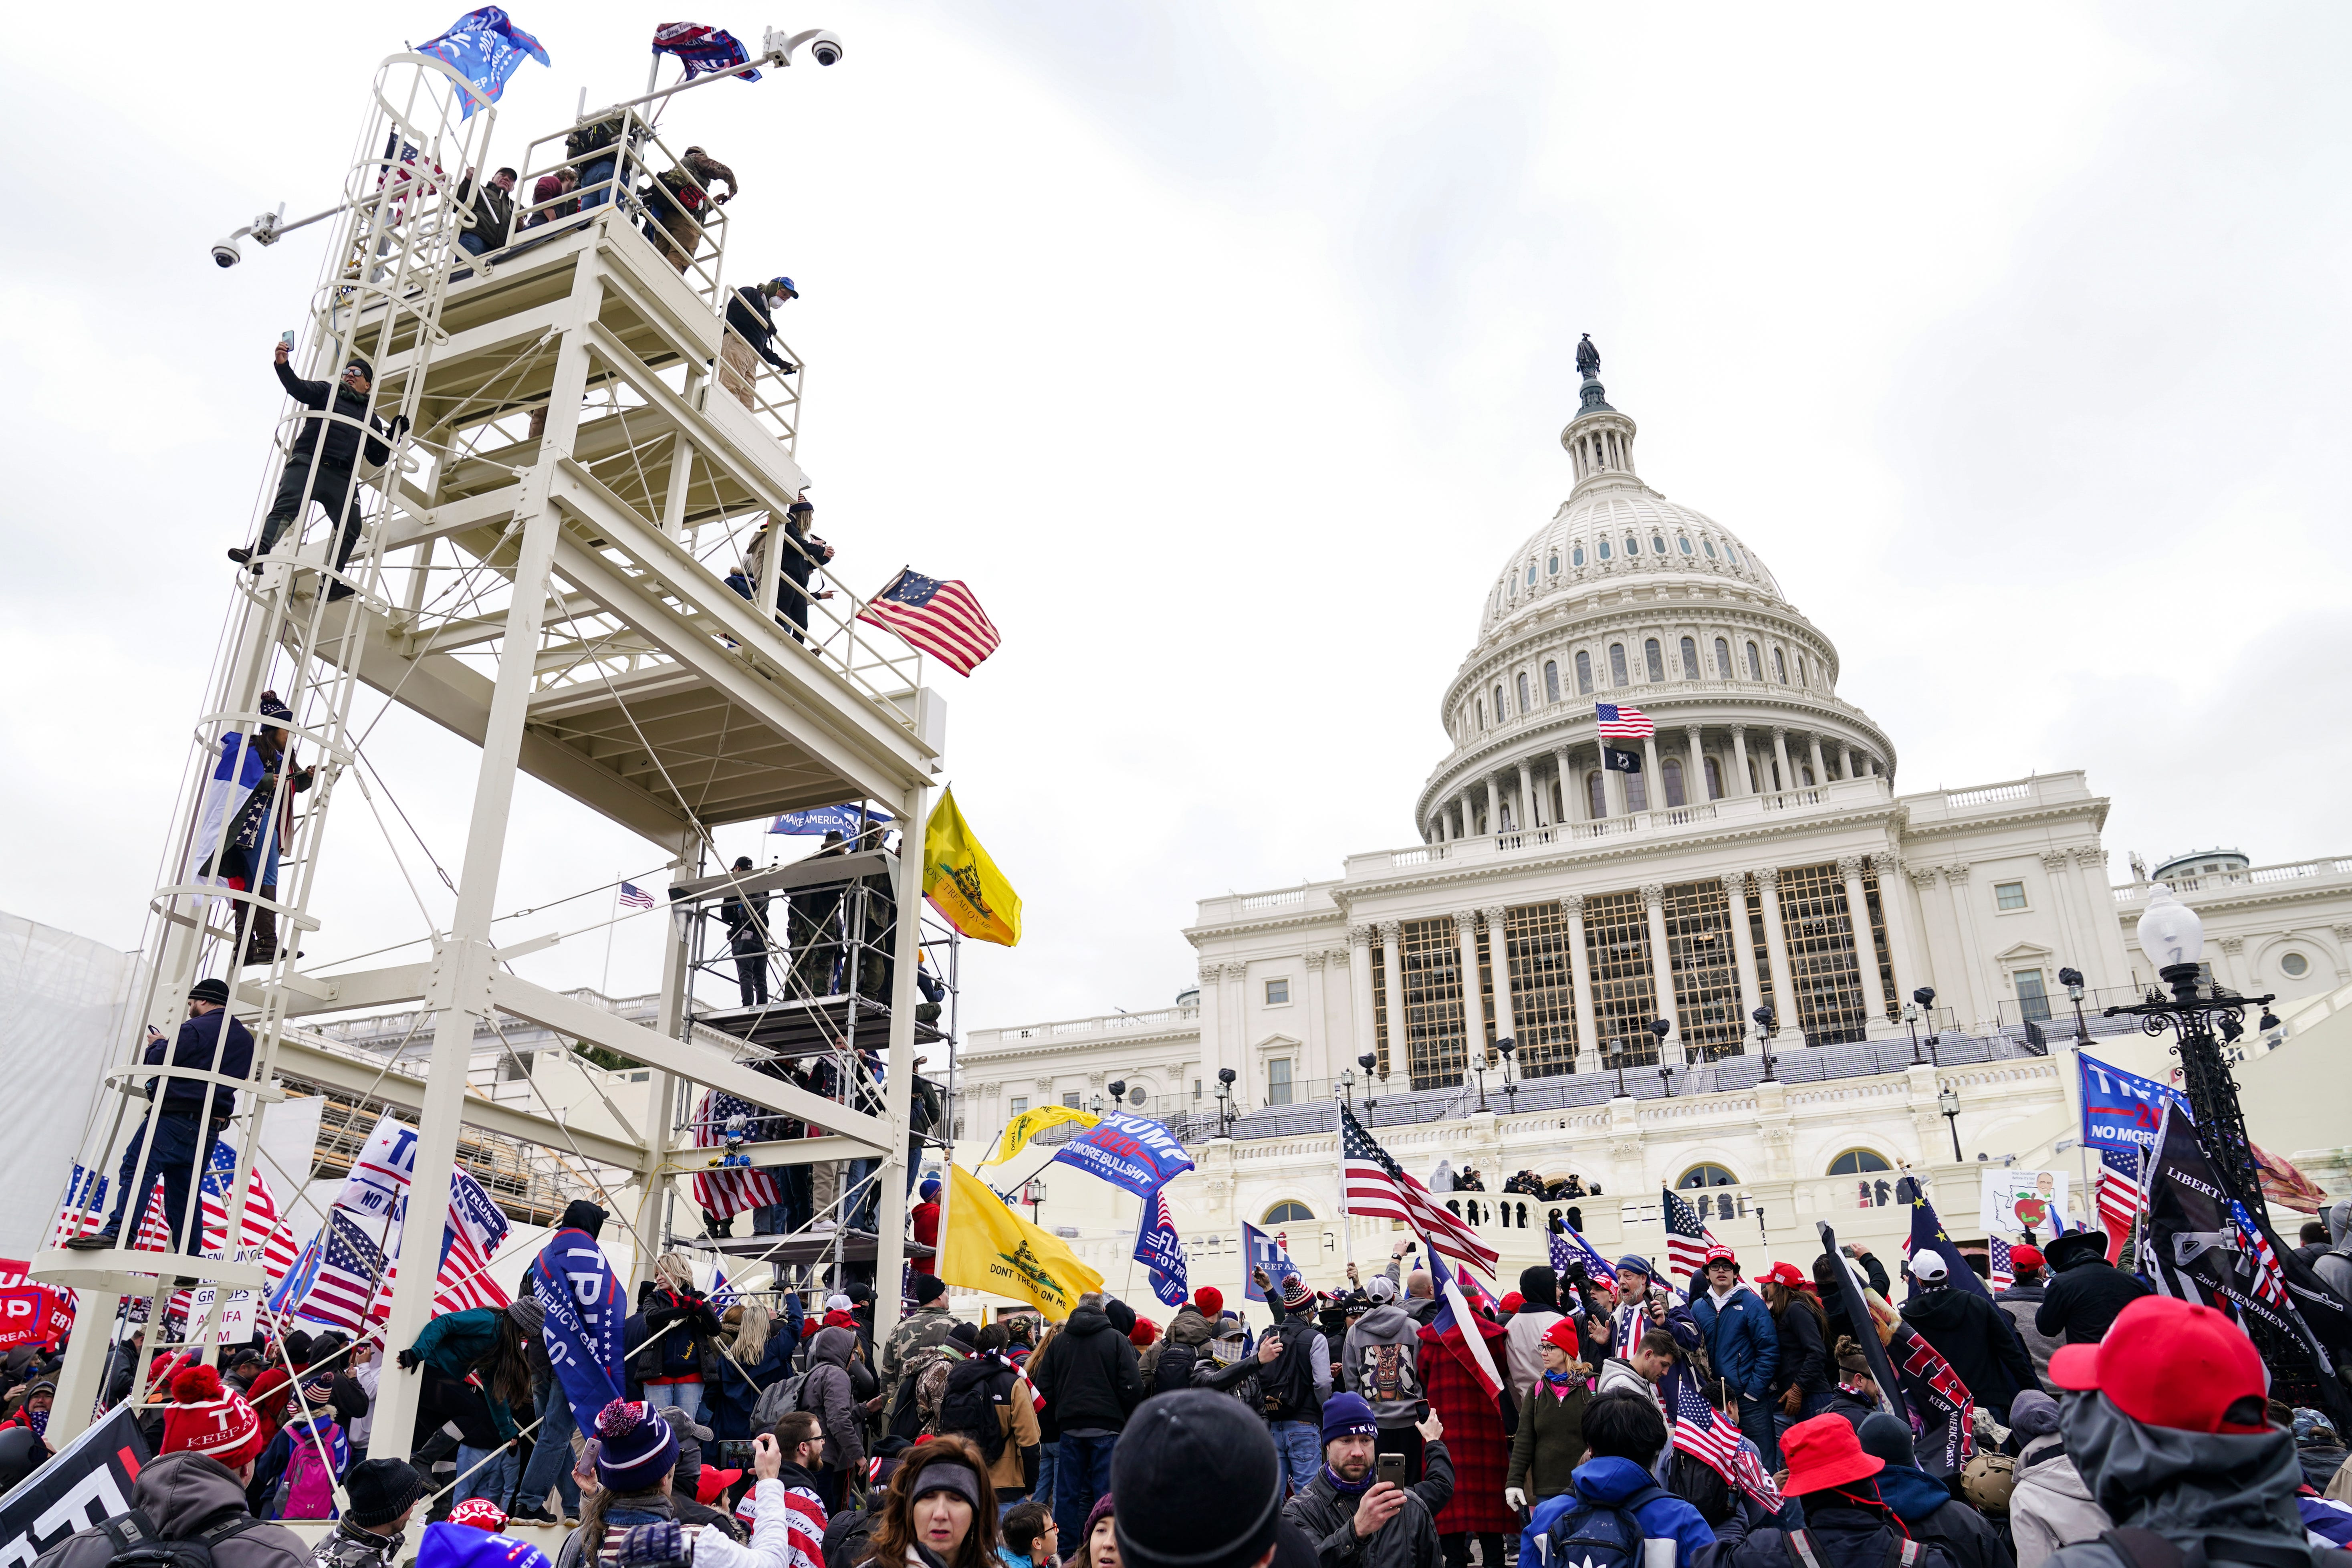 Supporters loyal to President Donald Trump clash with authorities before successfully breaching the Capitol building during a riot on the grounds, Wednesday, Jan. 6, 2021. A number of lawmakers and then the mob of protesters tried to overturn America's presidential election, undercutting the nation's democracy by attempting to keep Democrat Joe Biden from replacing Trump in the White House.